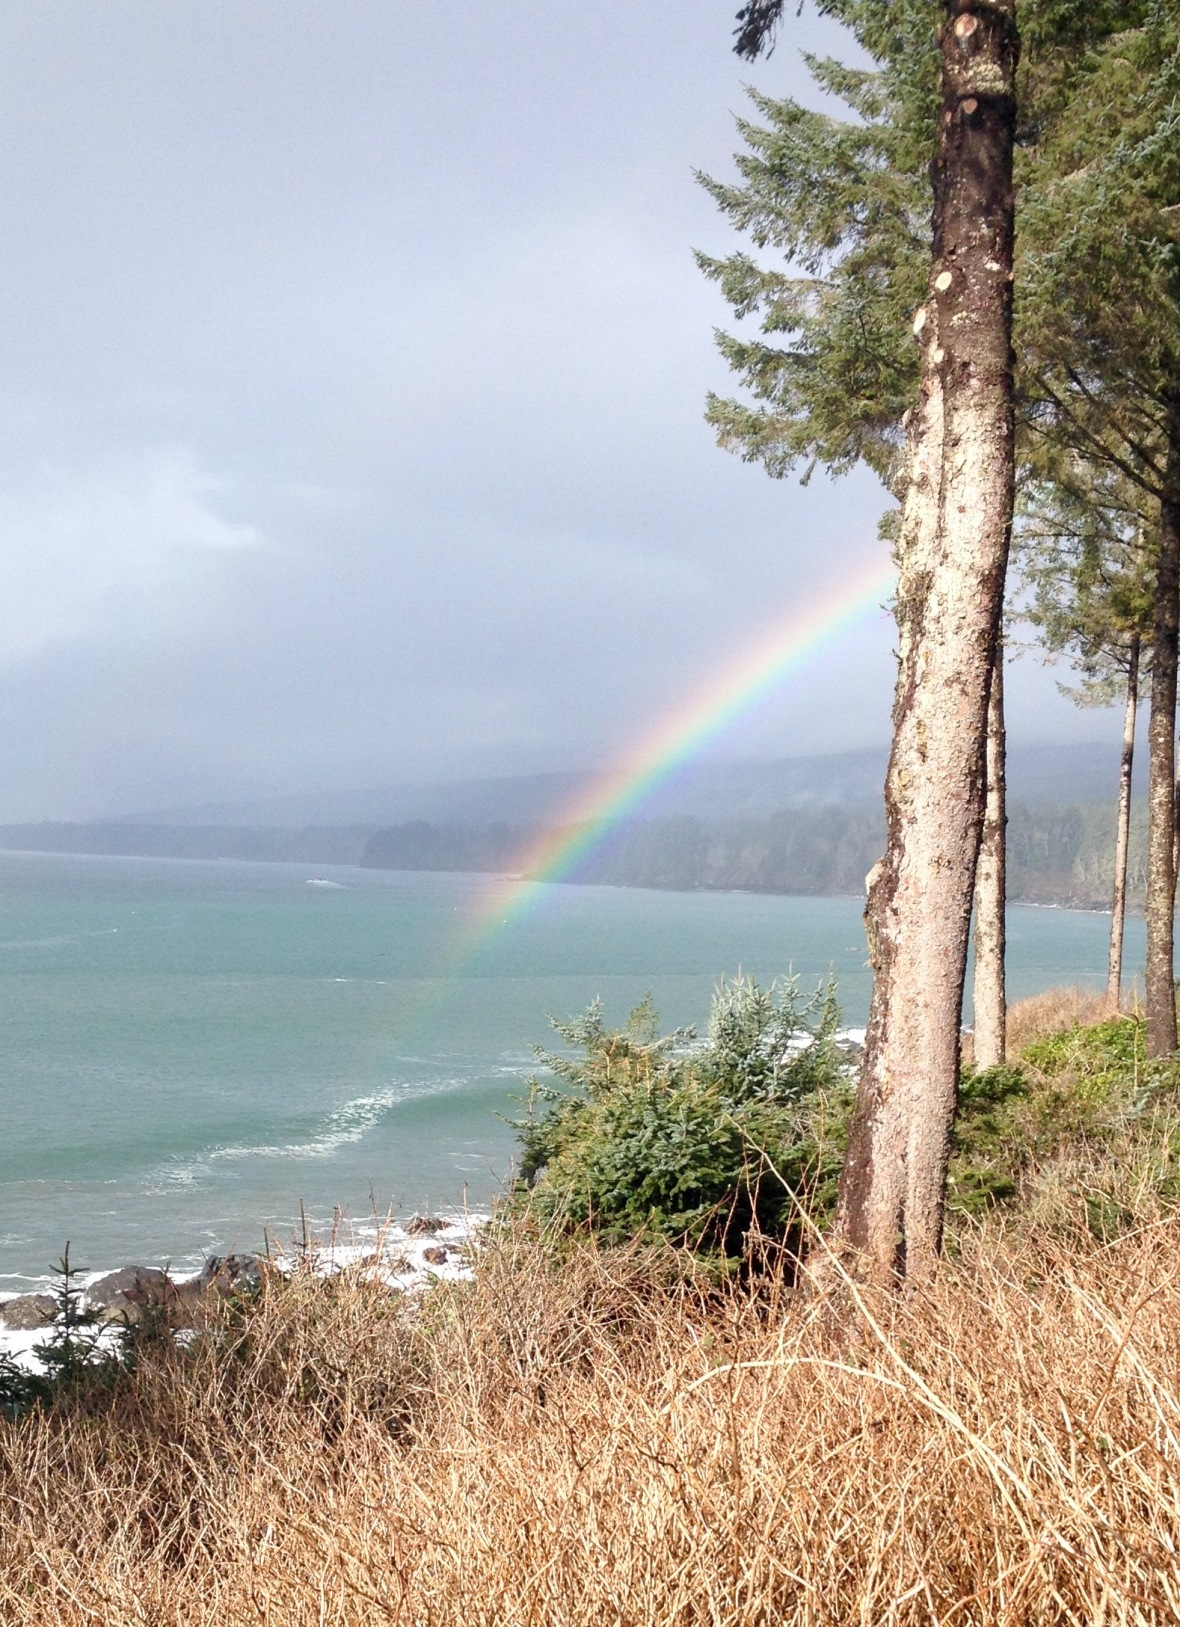 A rainbow breaks through the grey skies and ends in the ocean.